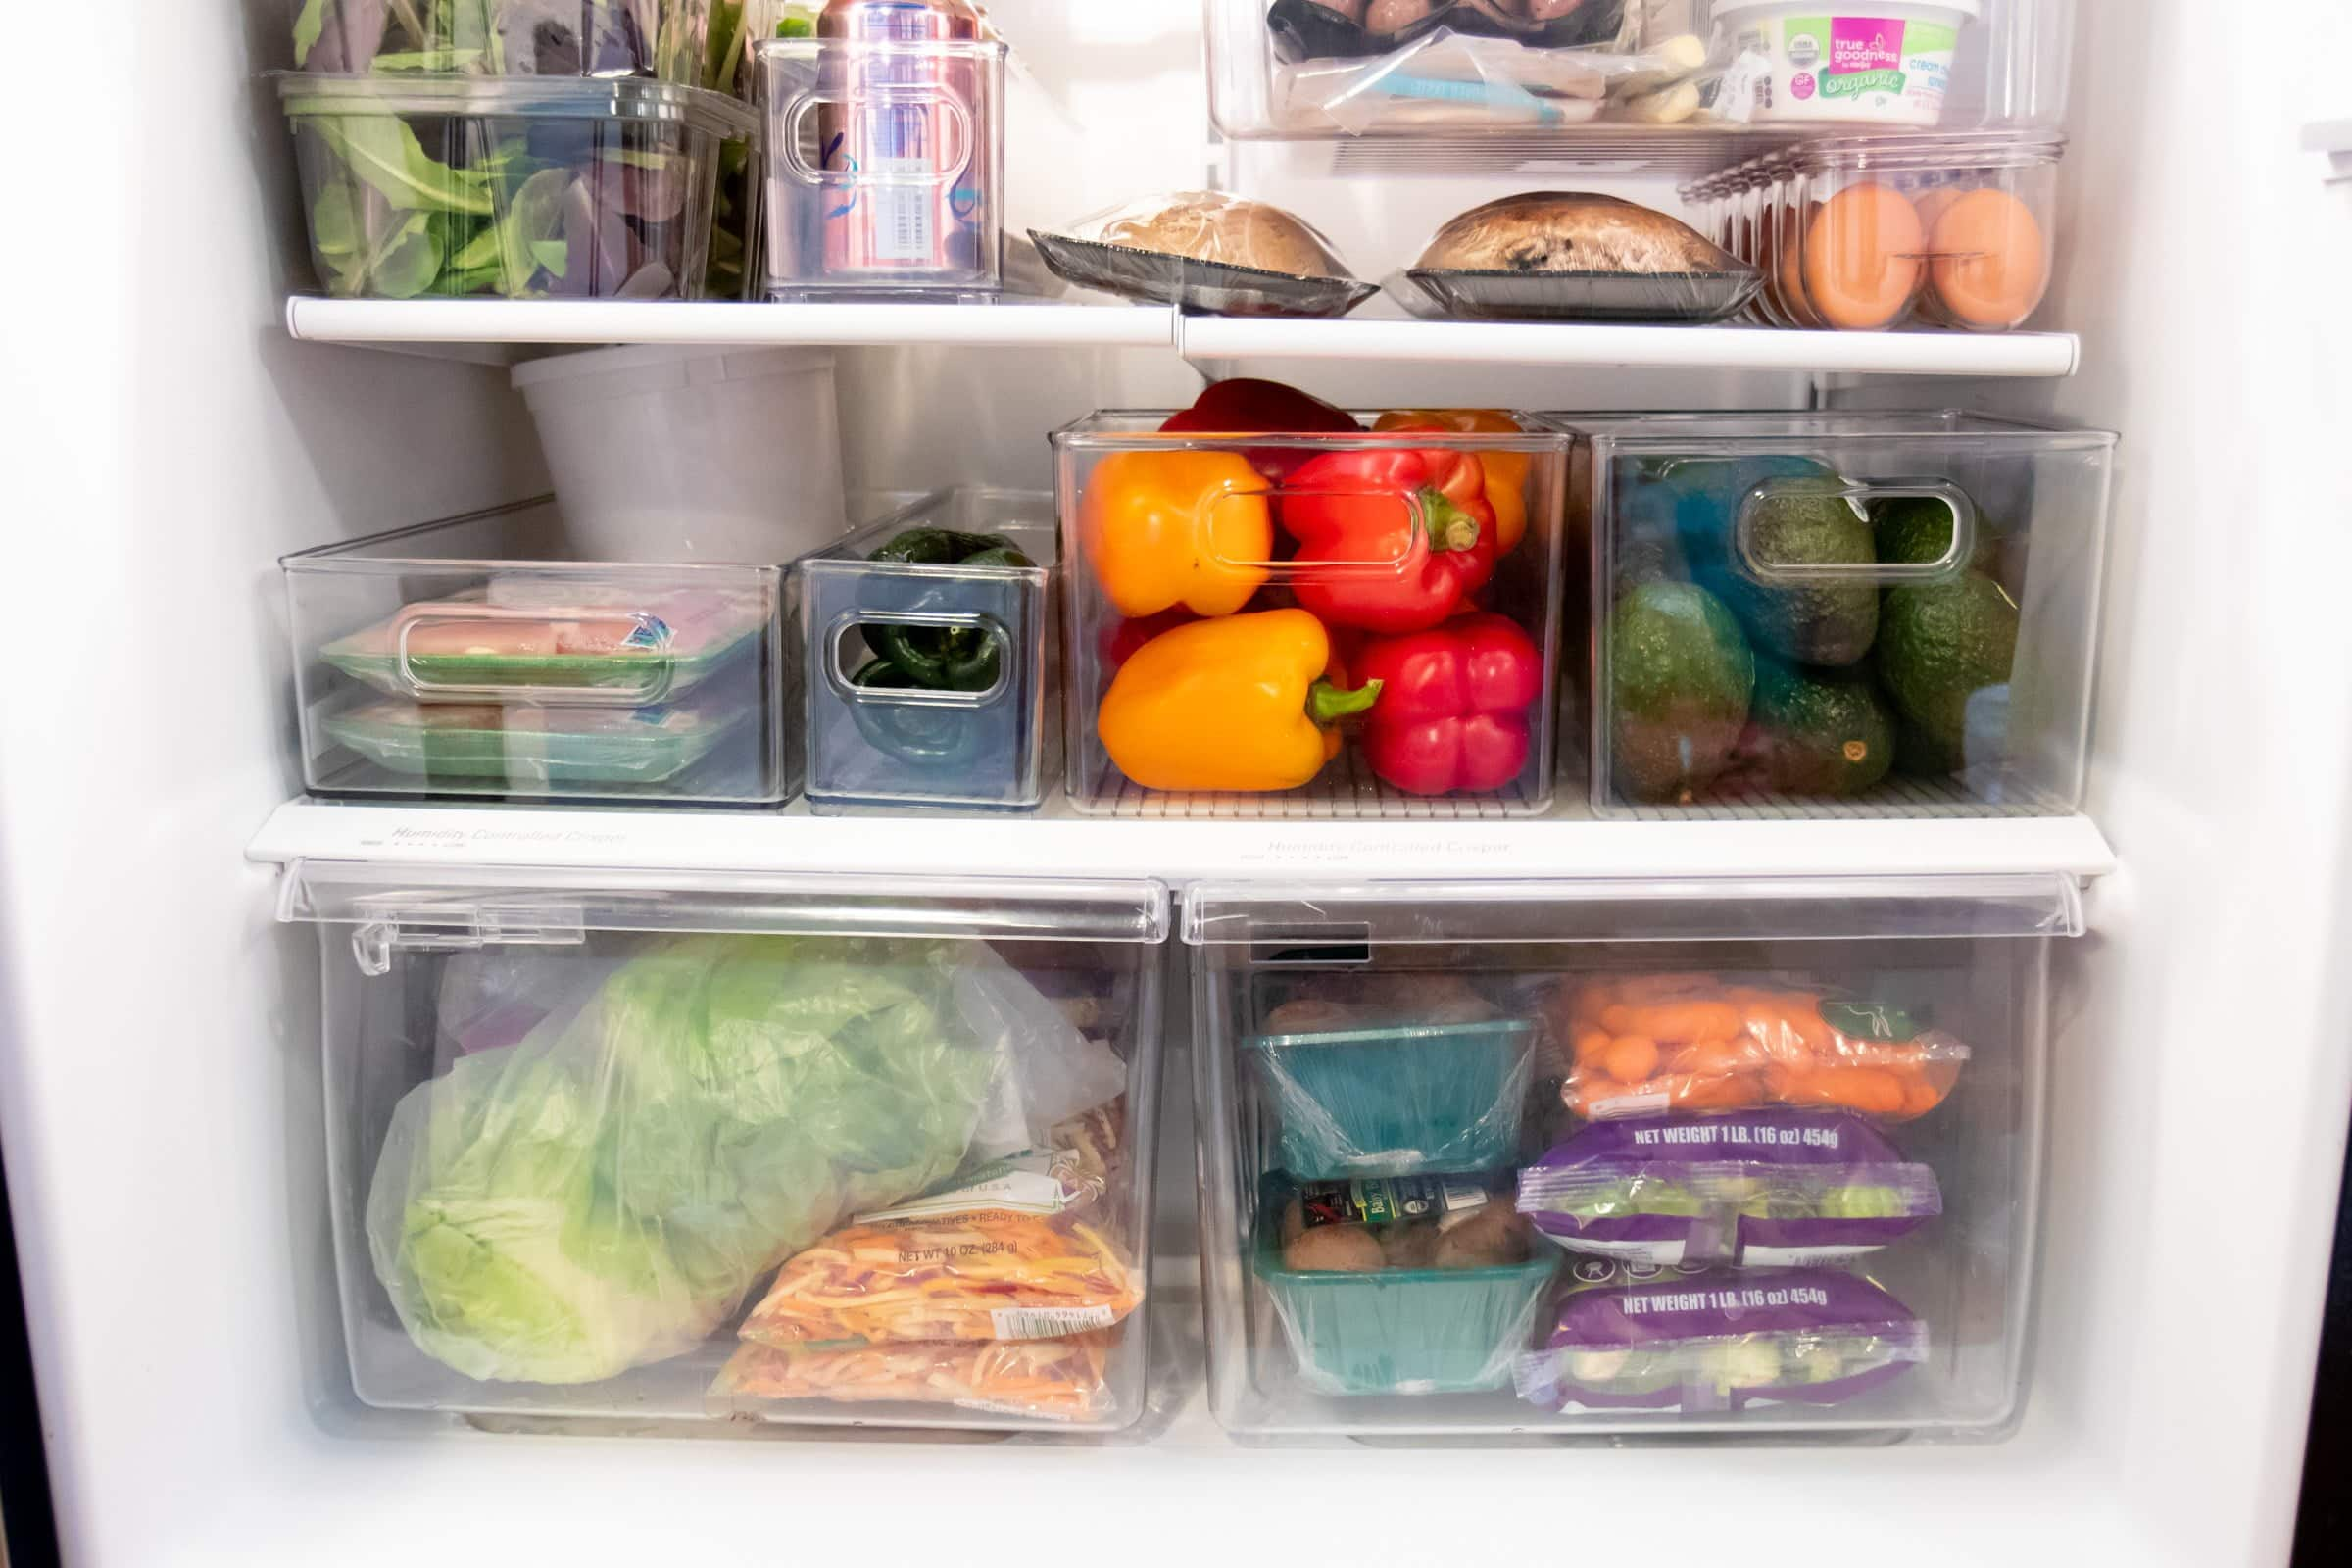 Close-up of crisper drawers filled with vegetables